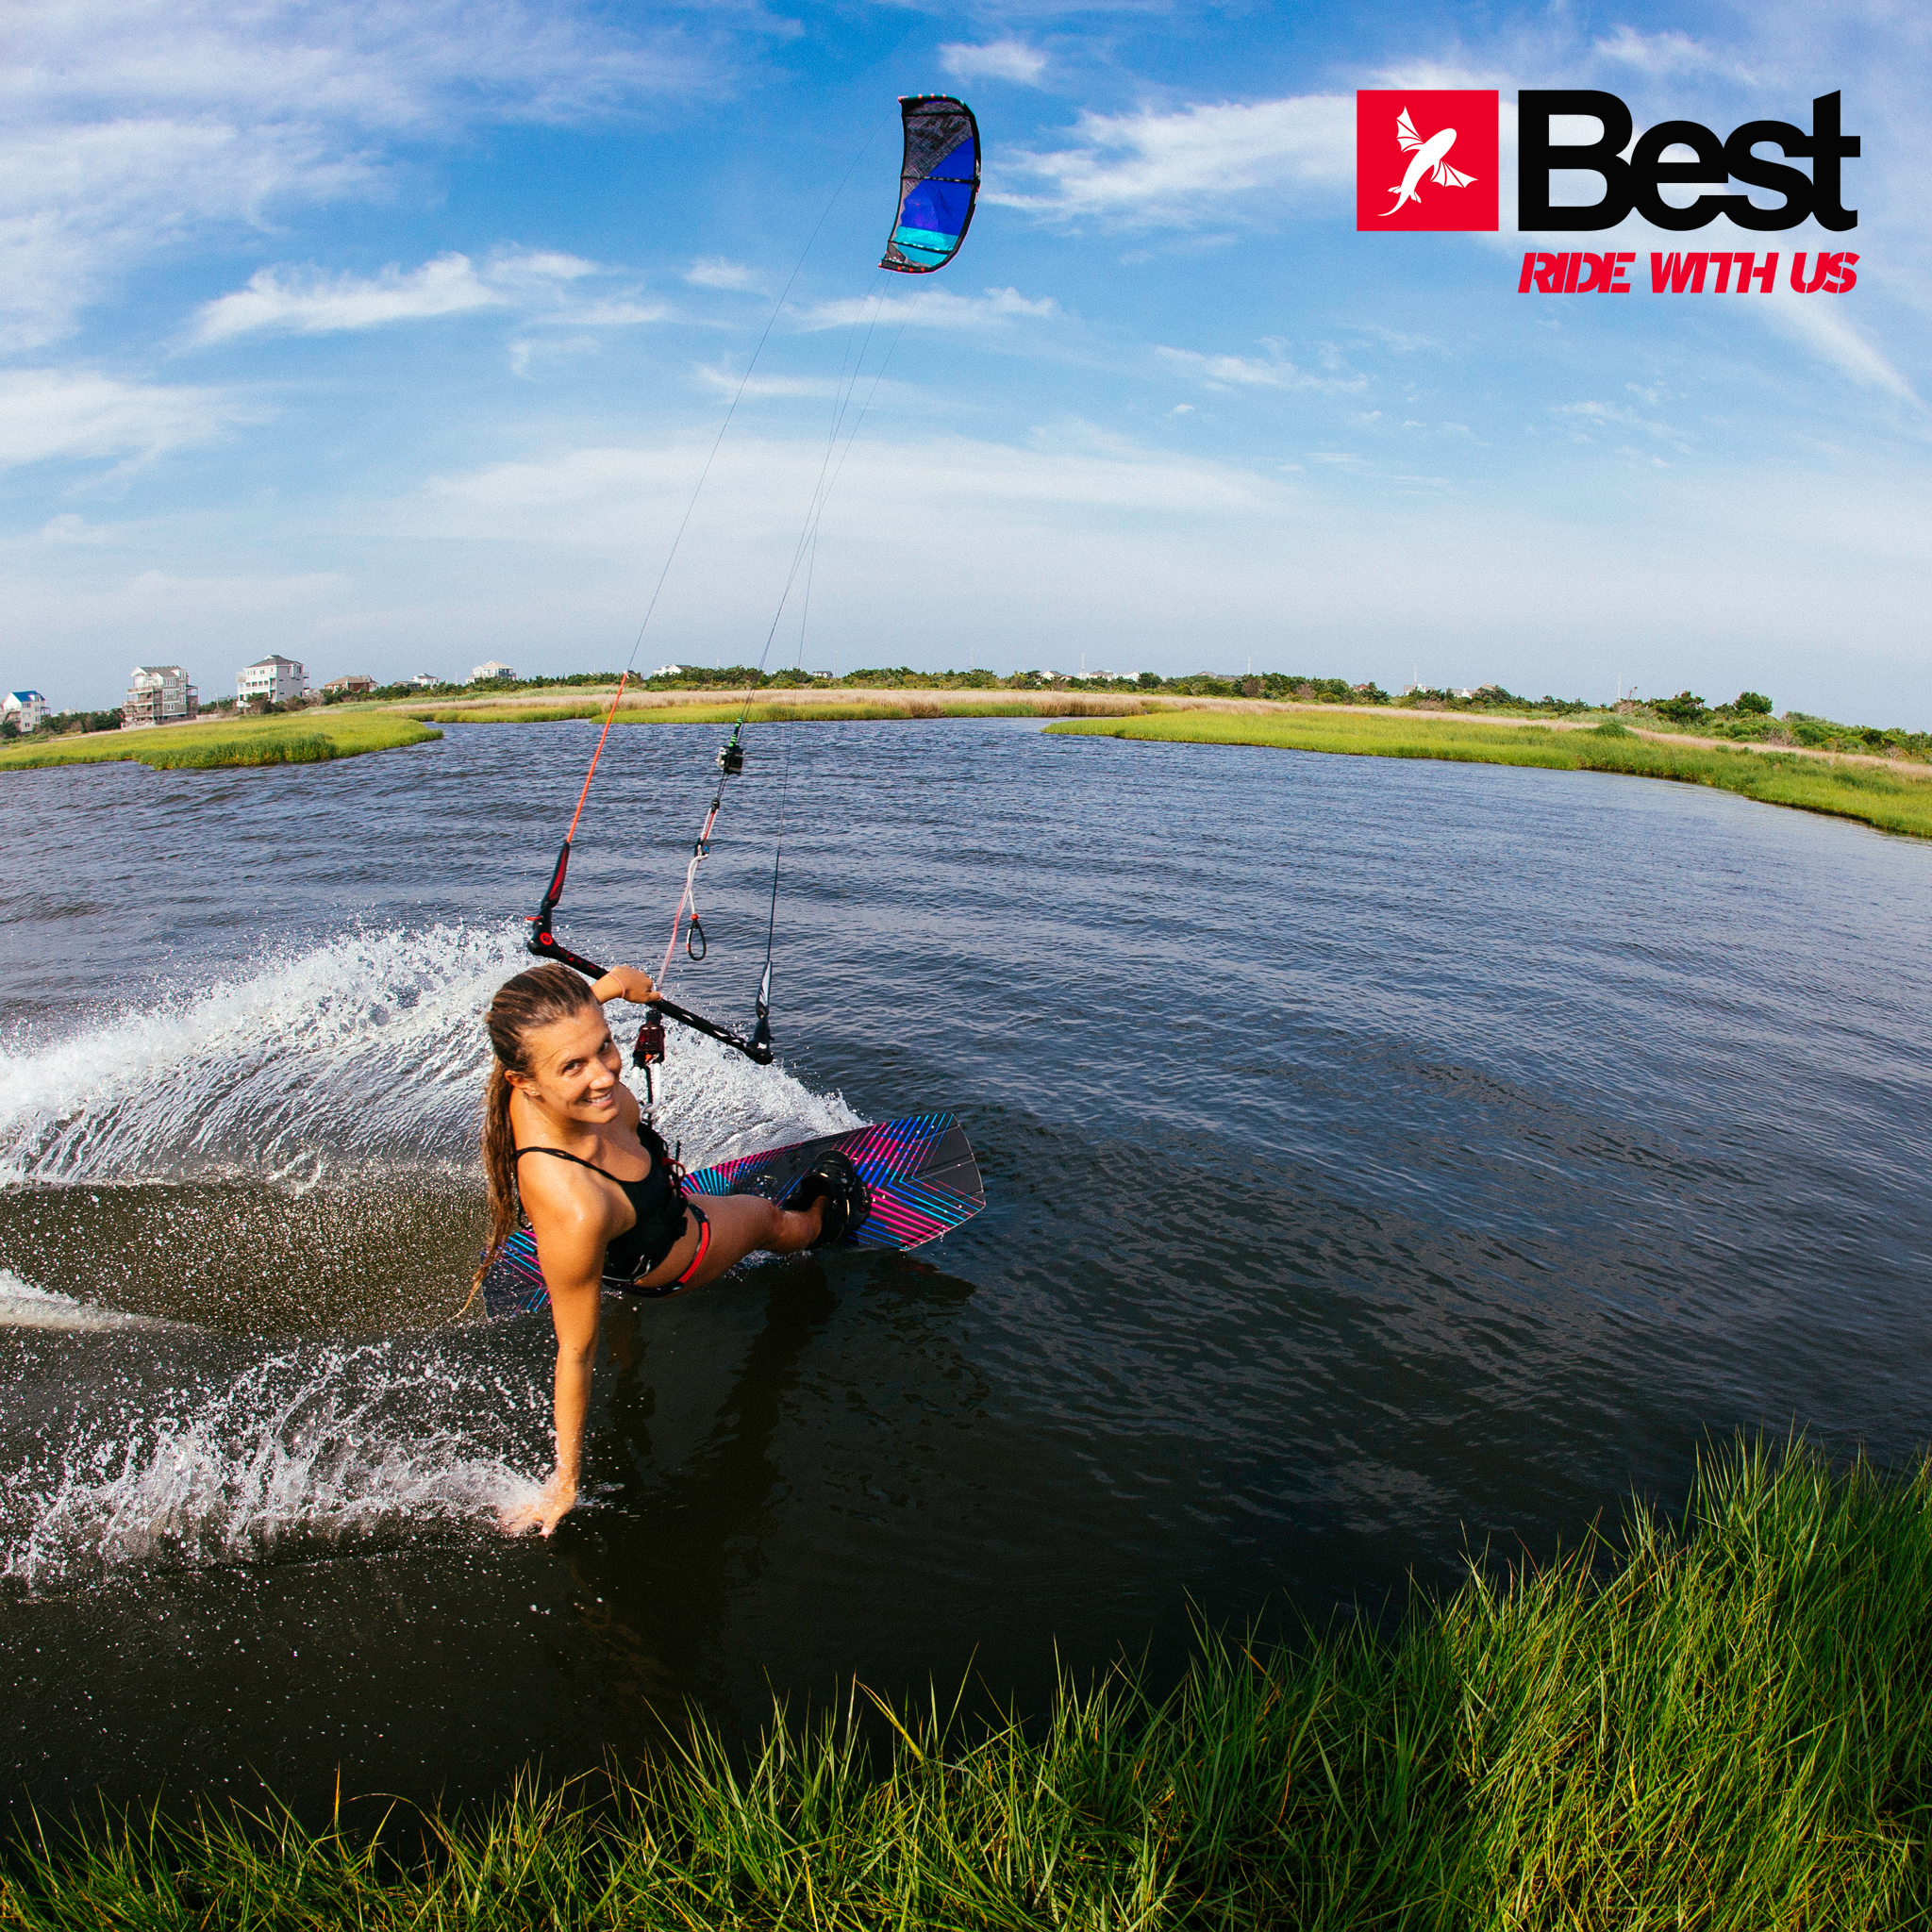 kitesurf wallpaper image - Cruising along the grass with the 2015 Best Kiteboarding TS kite - in resolution: iPad 2 & 3 2048 X 2048